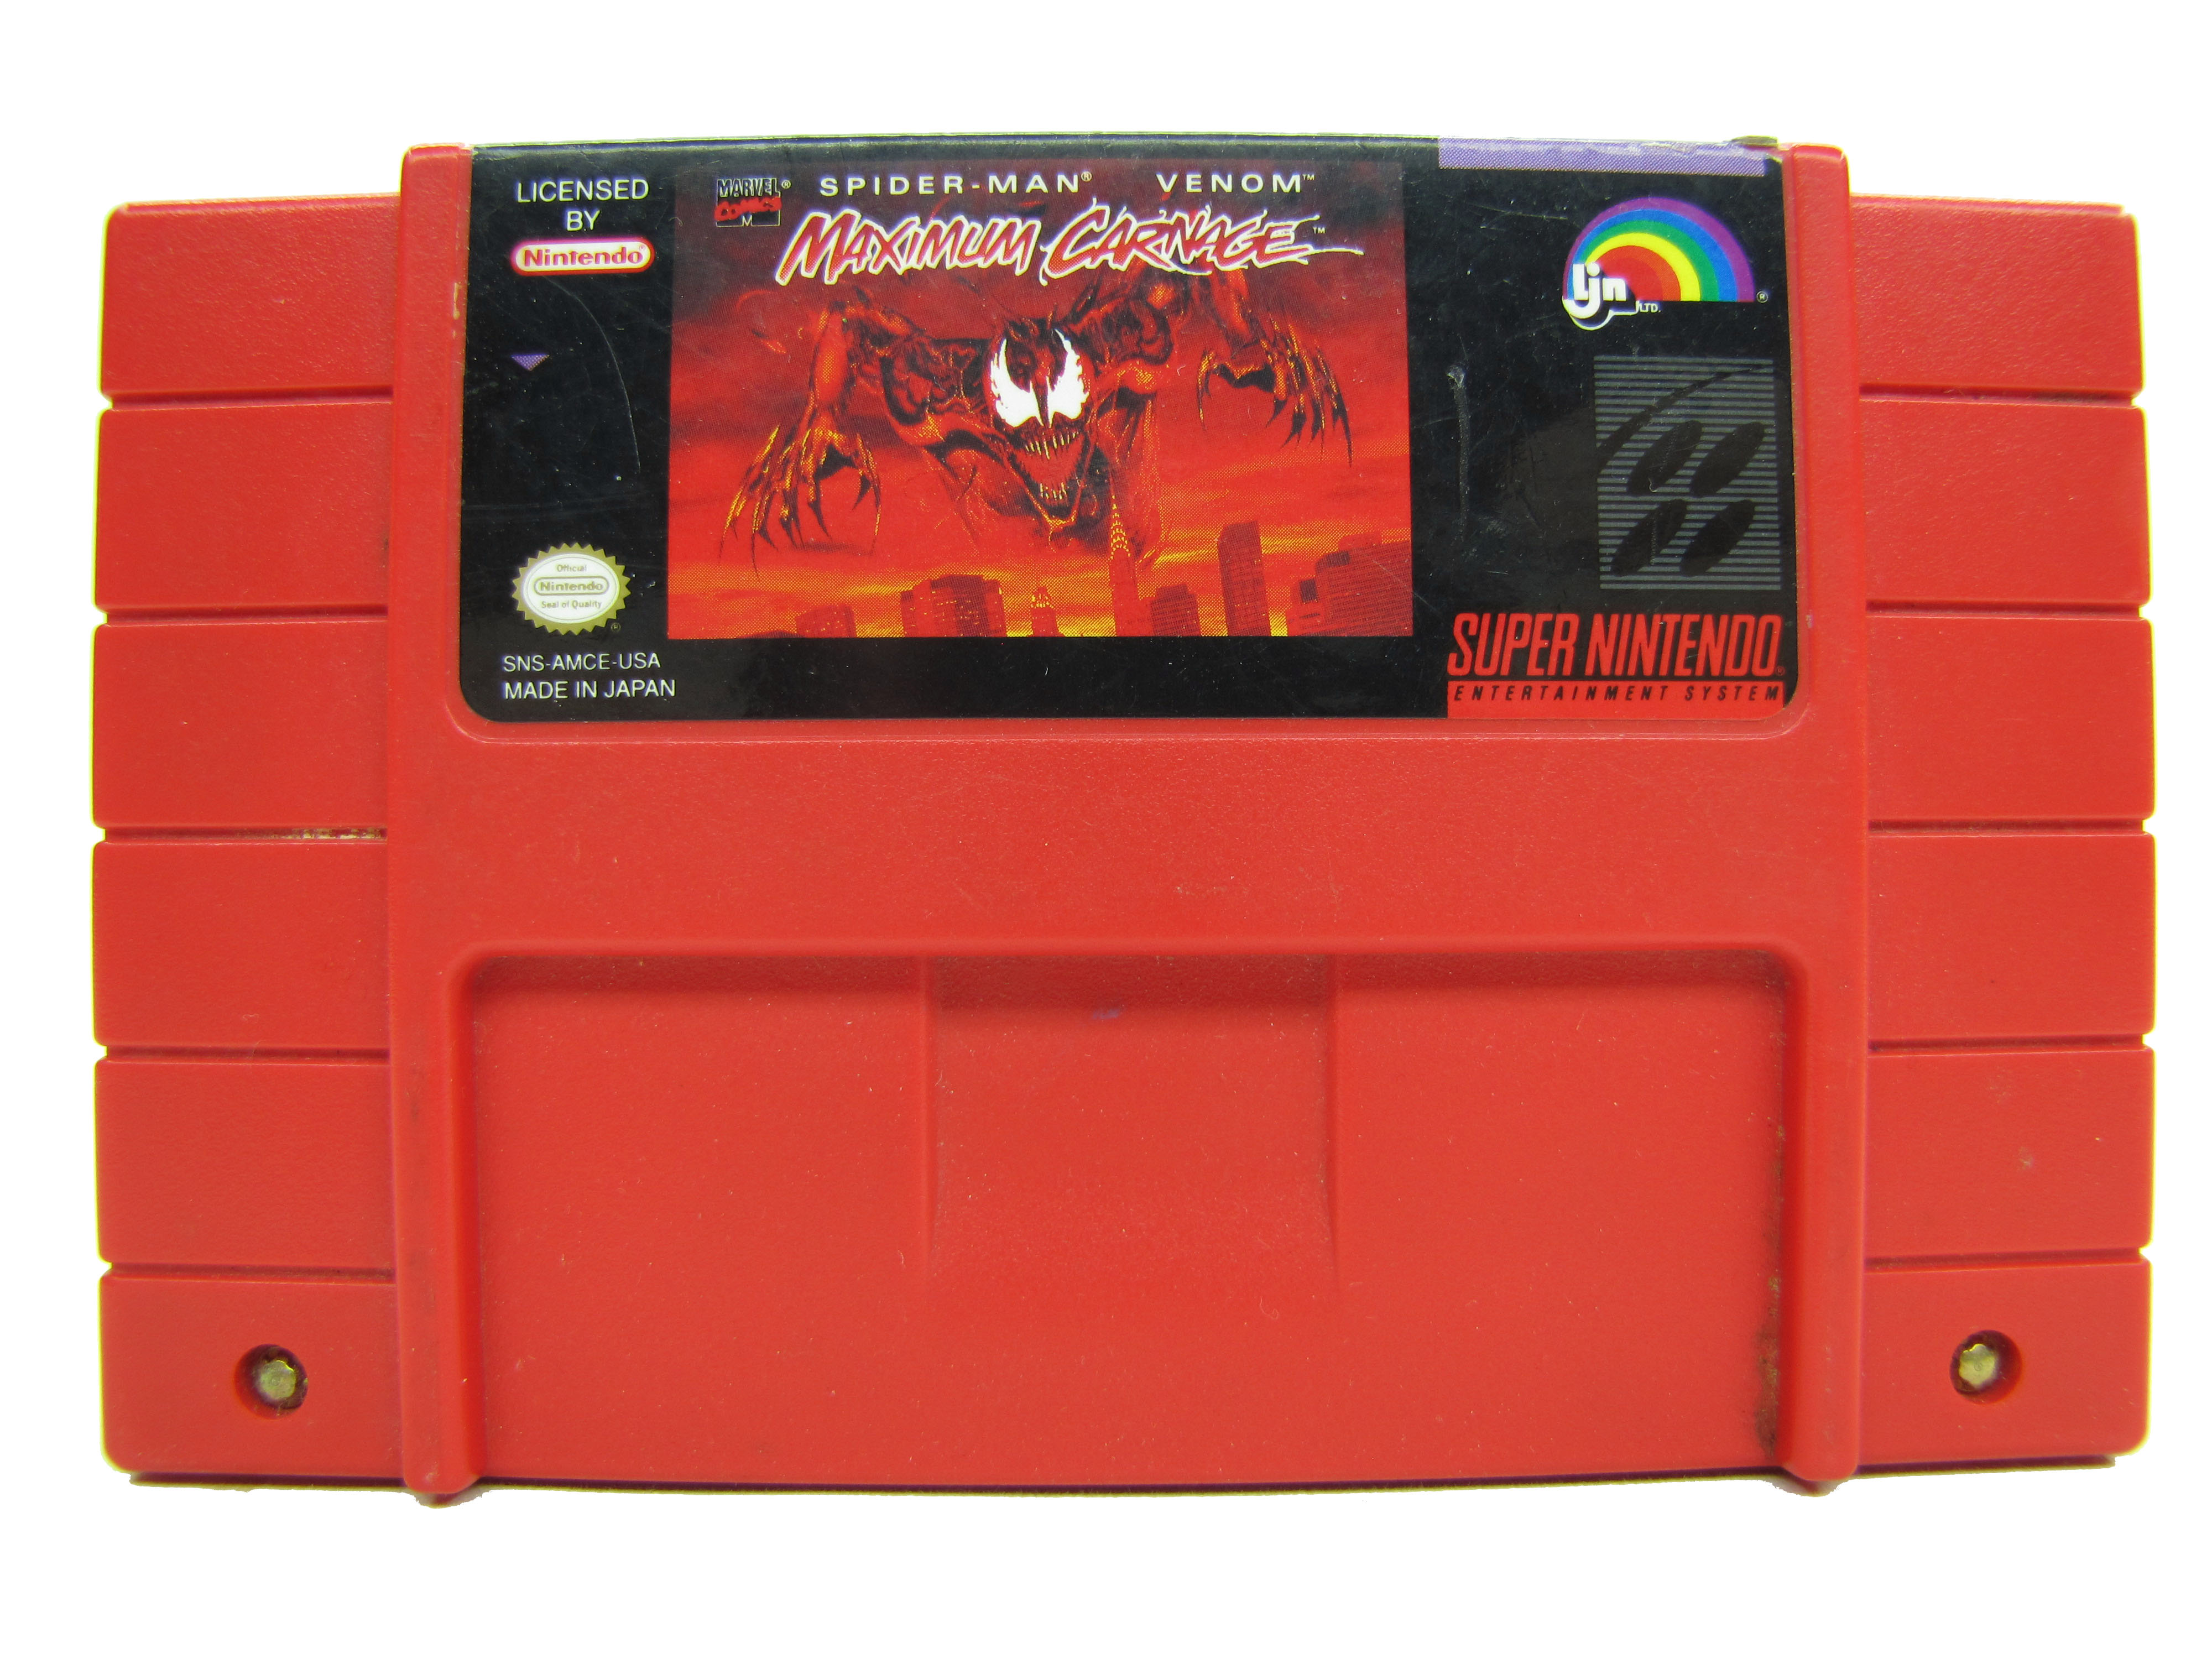 SNES Spider-Man Venom Maximum Carnage Red Cartridge - 1994